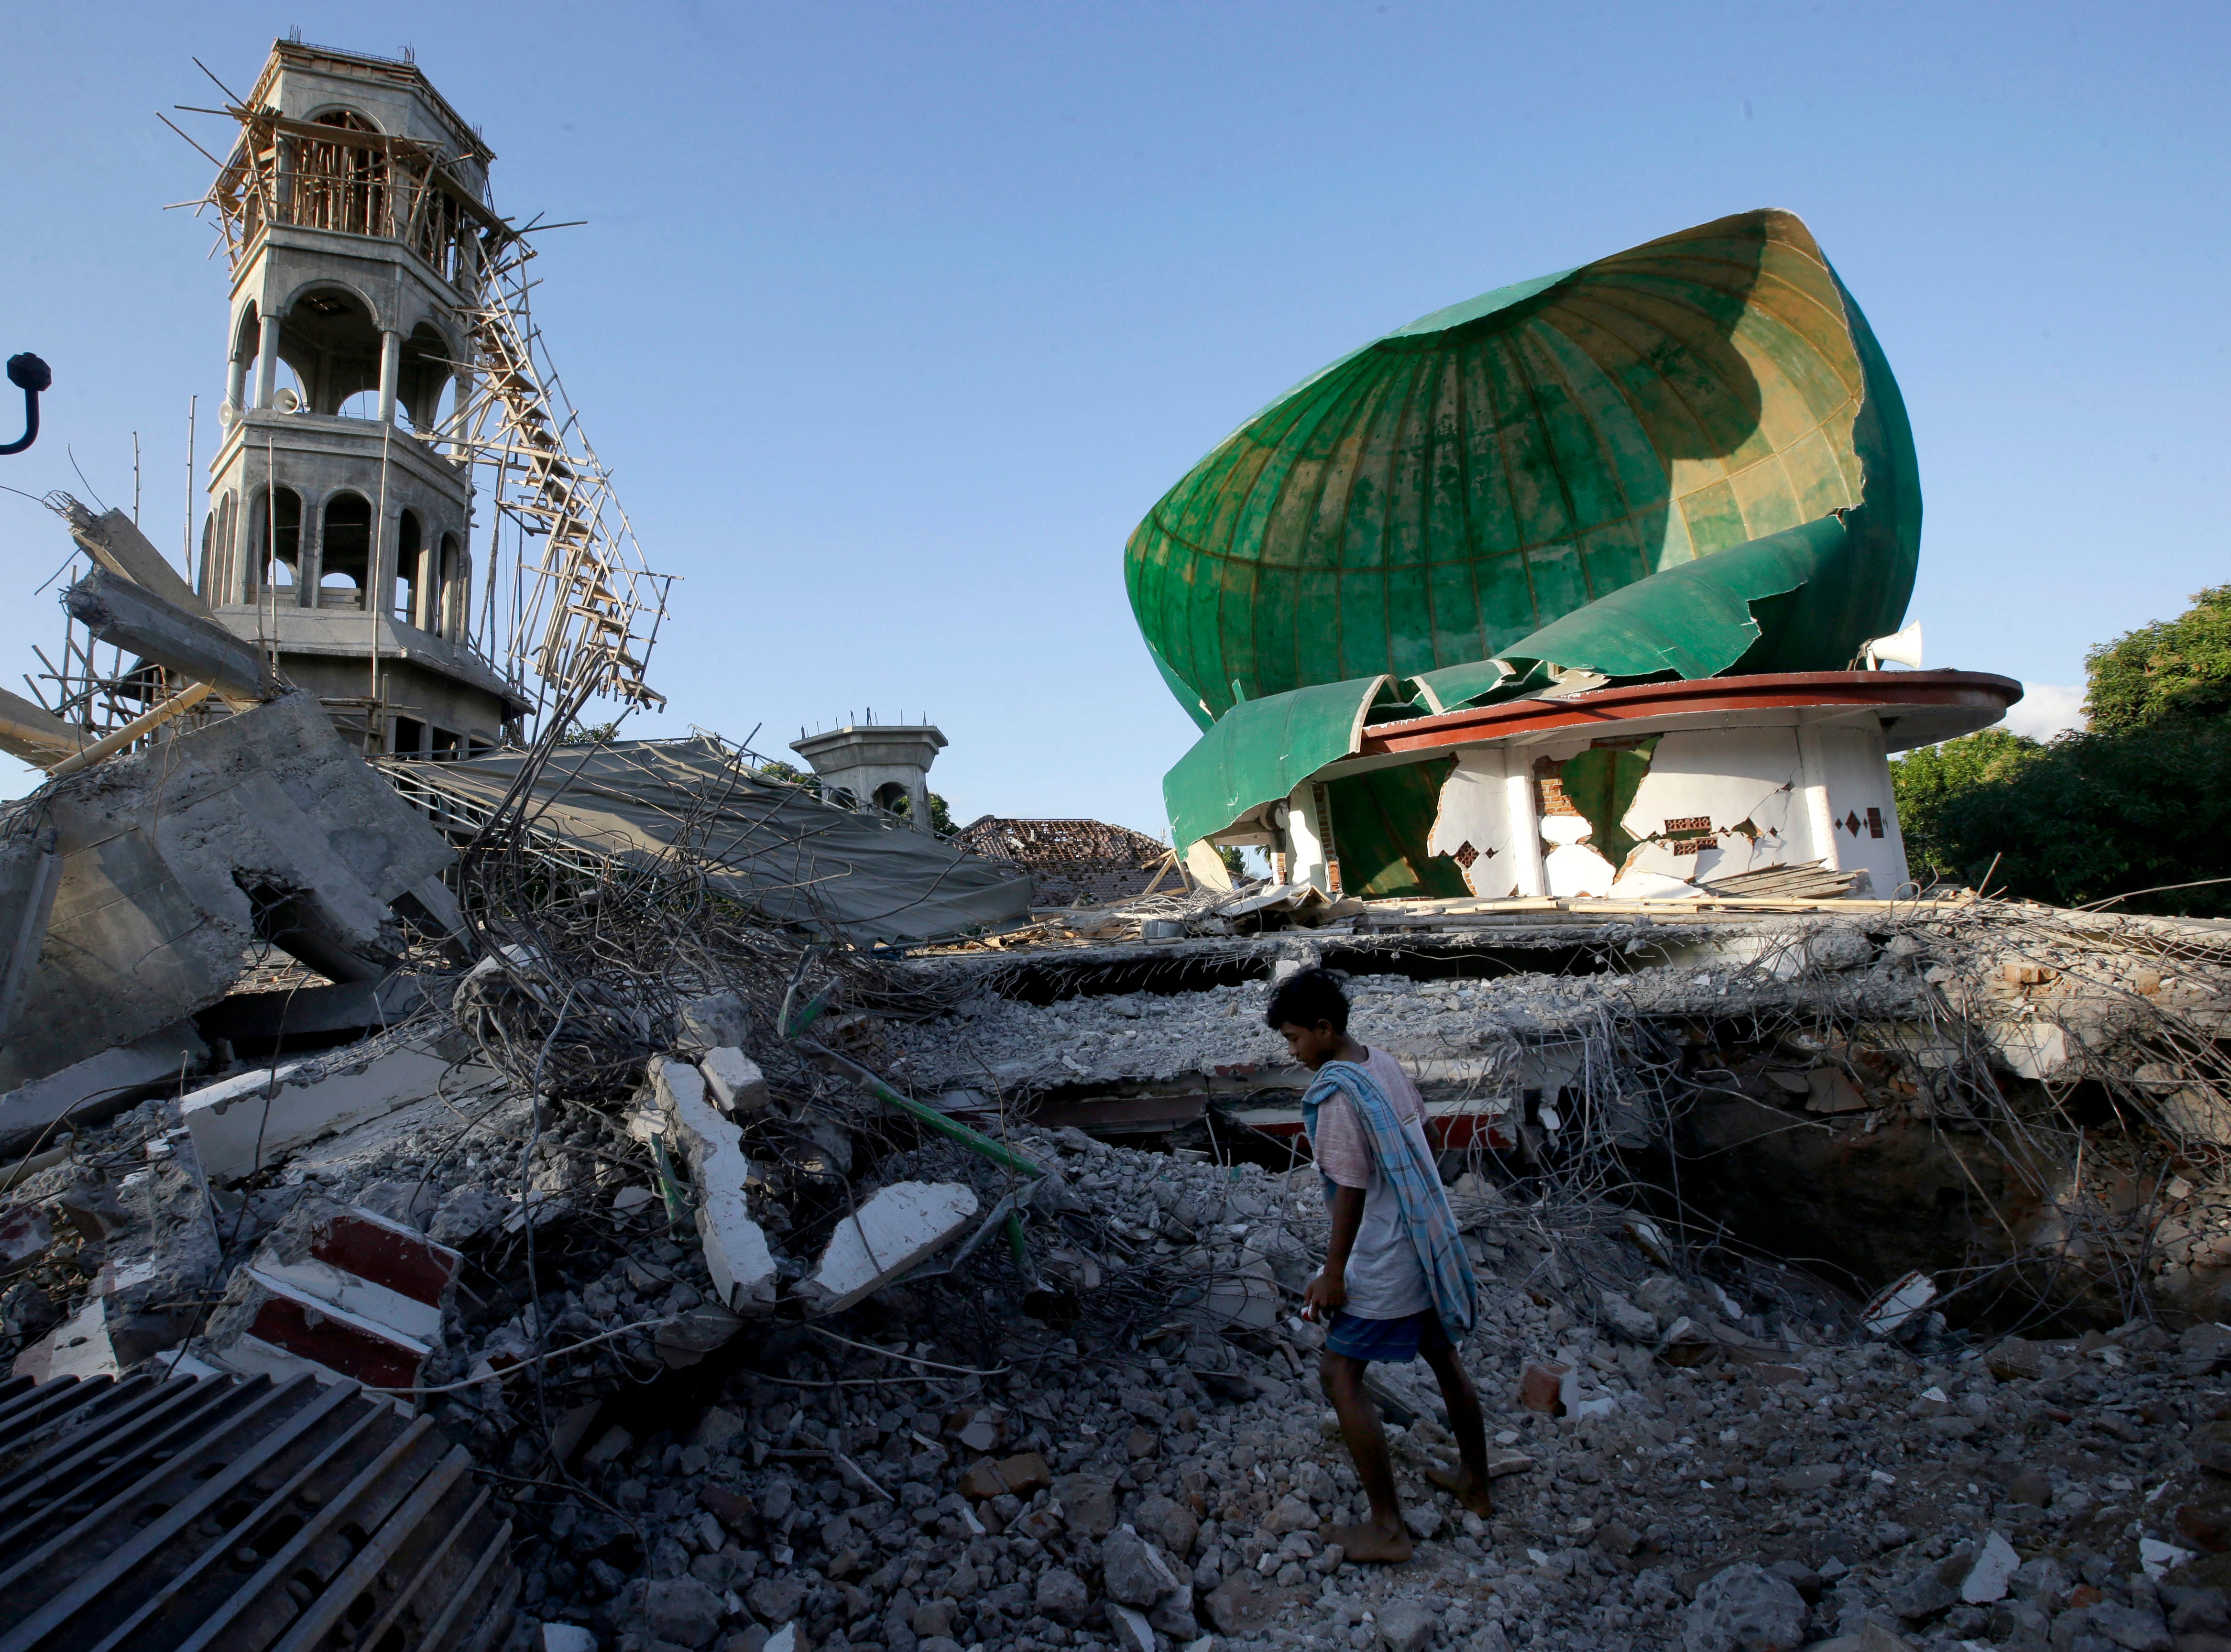 Aug. 7, 2018: A resident inspects a mosque damaged by an earthquake in North Lombok, Indonesia. The earthquakes that struck Lombok in eastern Indonesia in August, the biggest with a magnitude of 6.9, did not generate a tsunami but nonetheless caused widespread damage on the island and on nearby Bali, killing more than 500 people. Damages are estimated at more than $500 million.